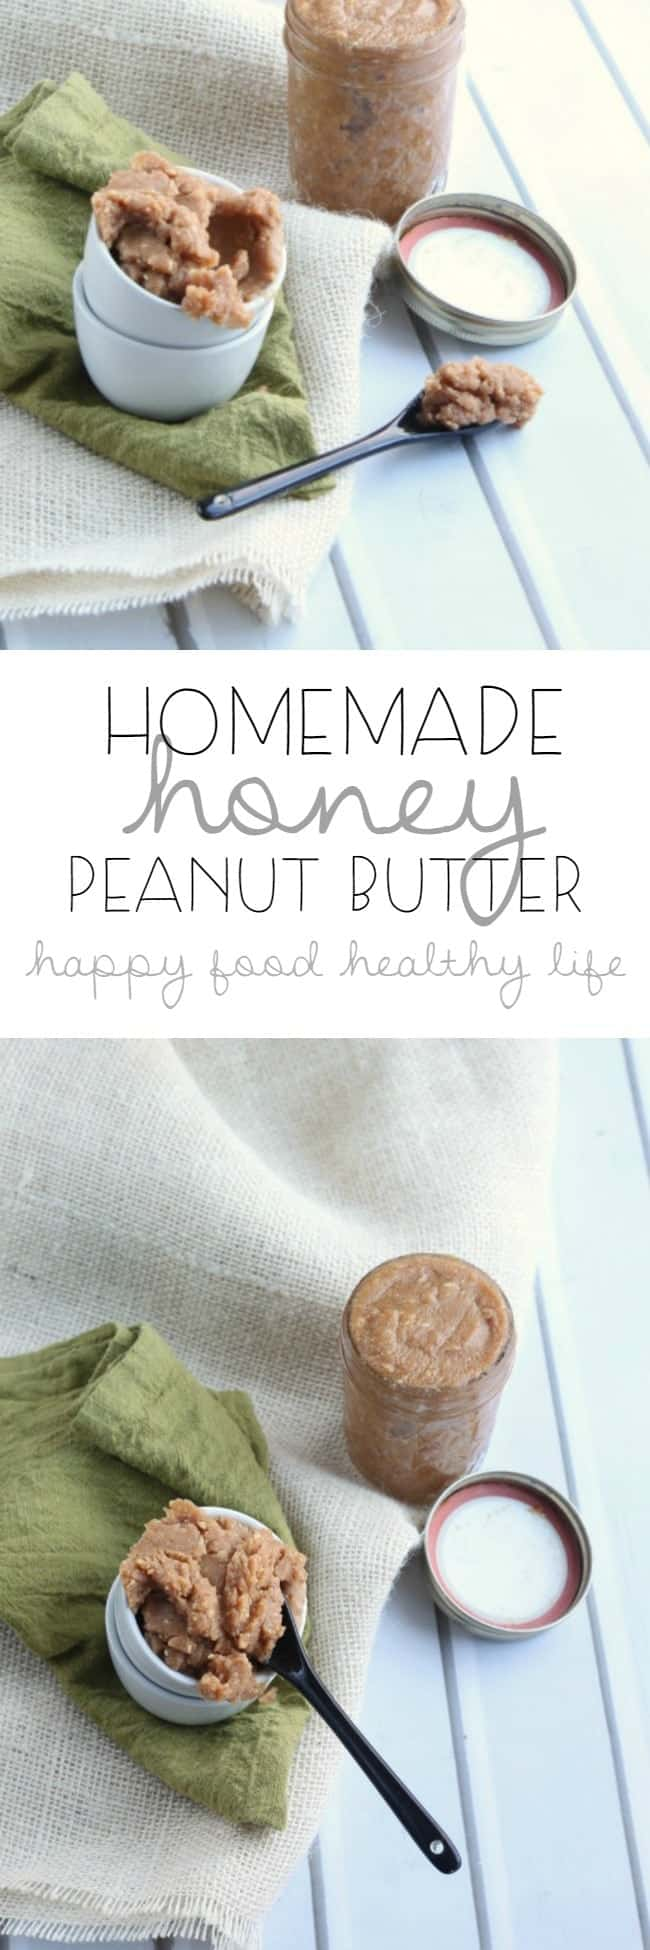 Homemade Honey Peanut Butter. Easy to whip together in minutes. Only 3 natural ingredients. Nothing strange like what you get in the store! | www.happyfoodhealthylife.com